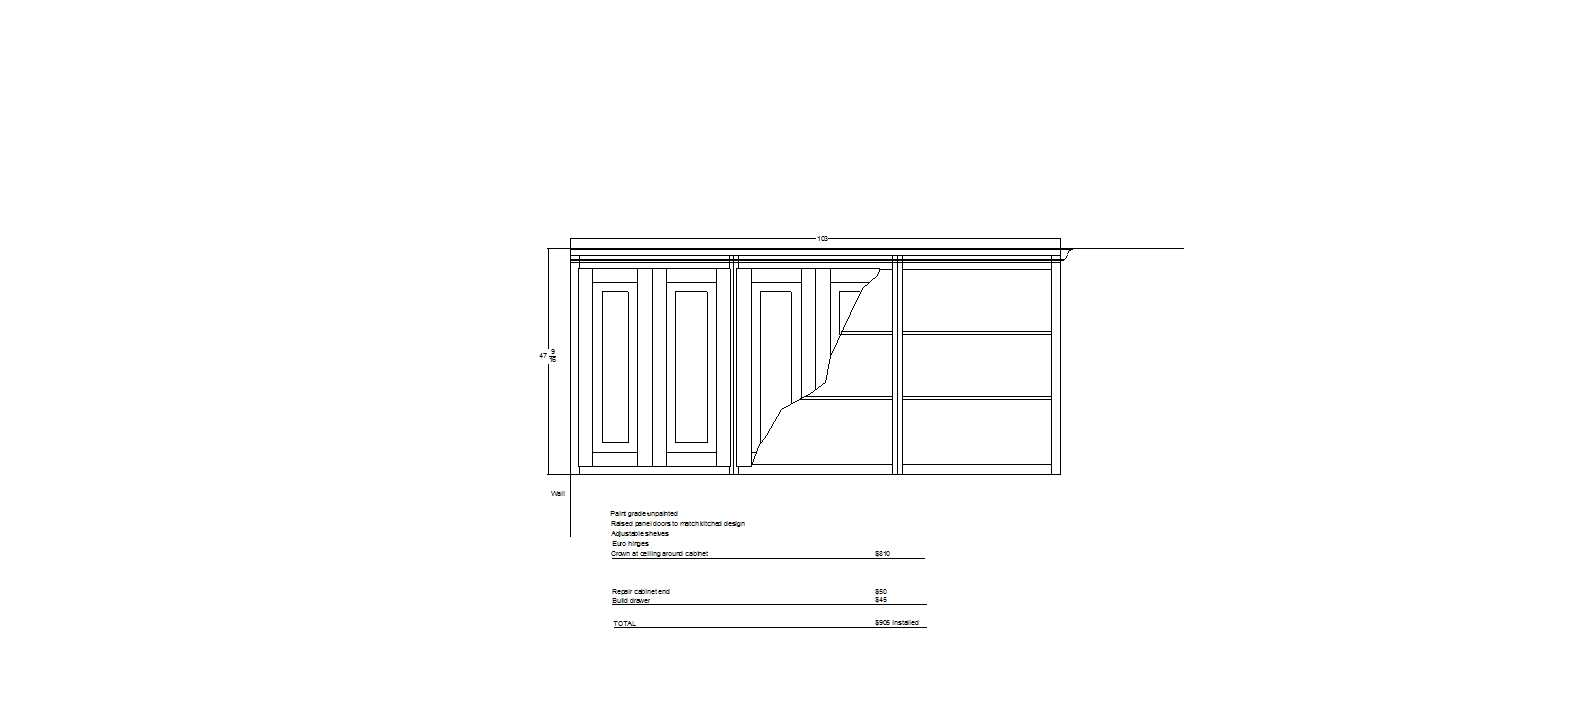 Partial plans for the custom cabinetry.